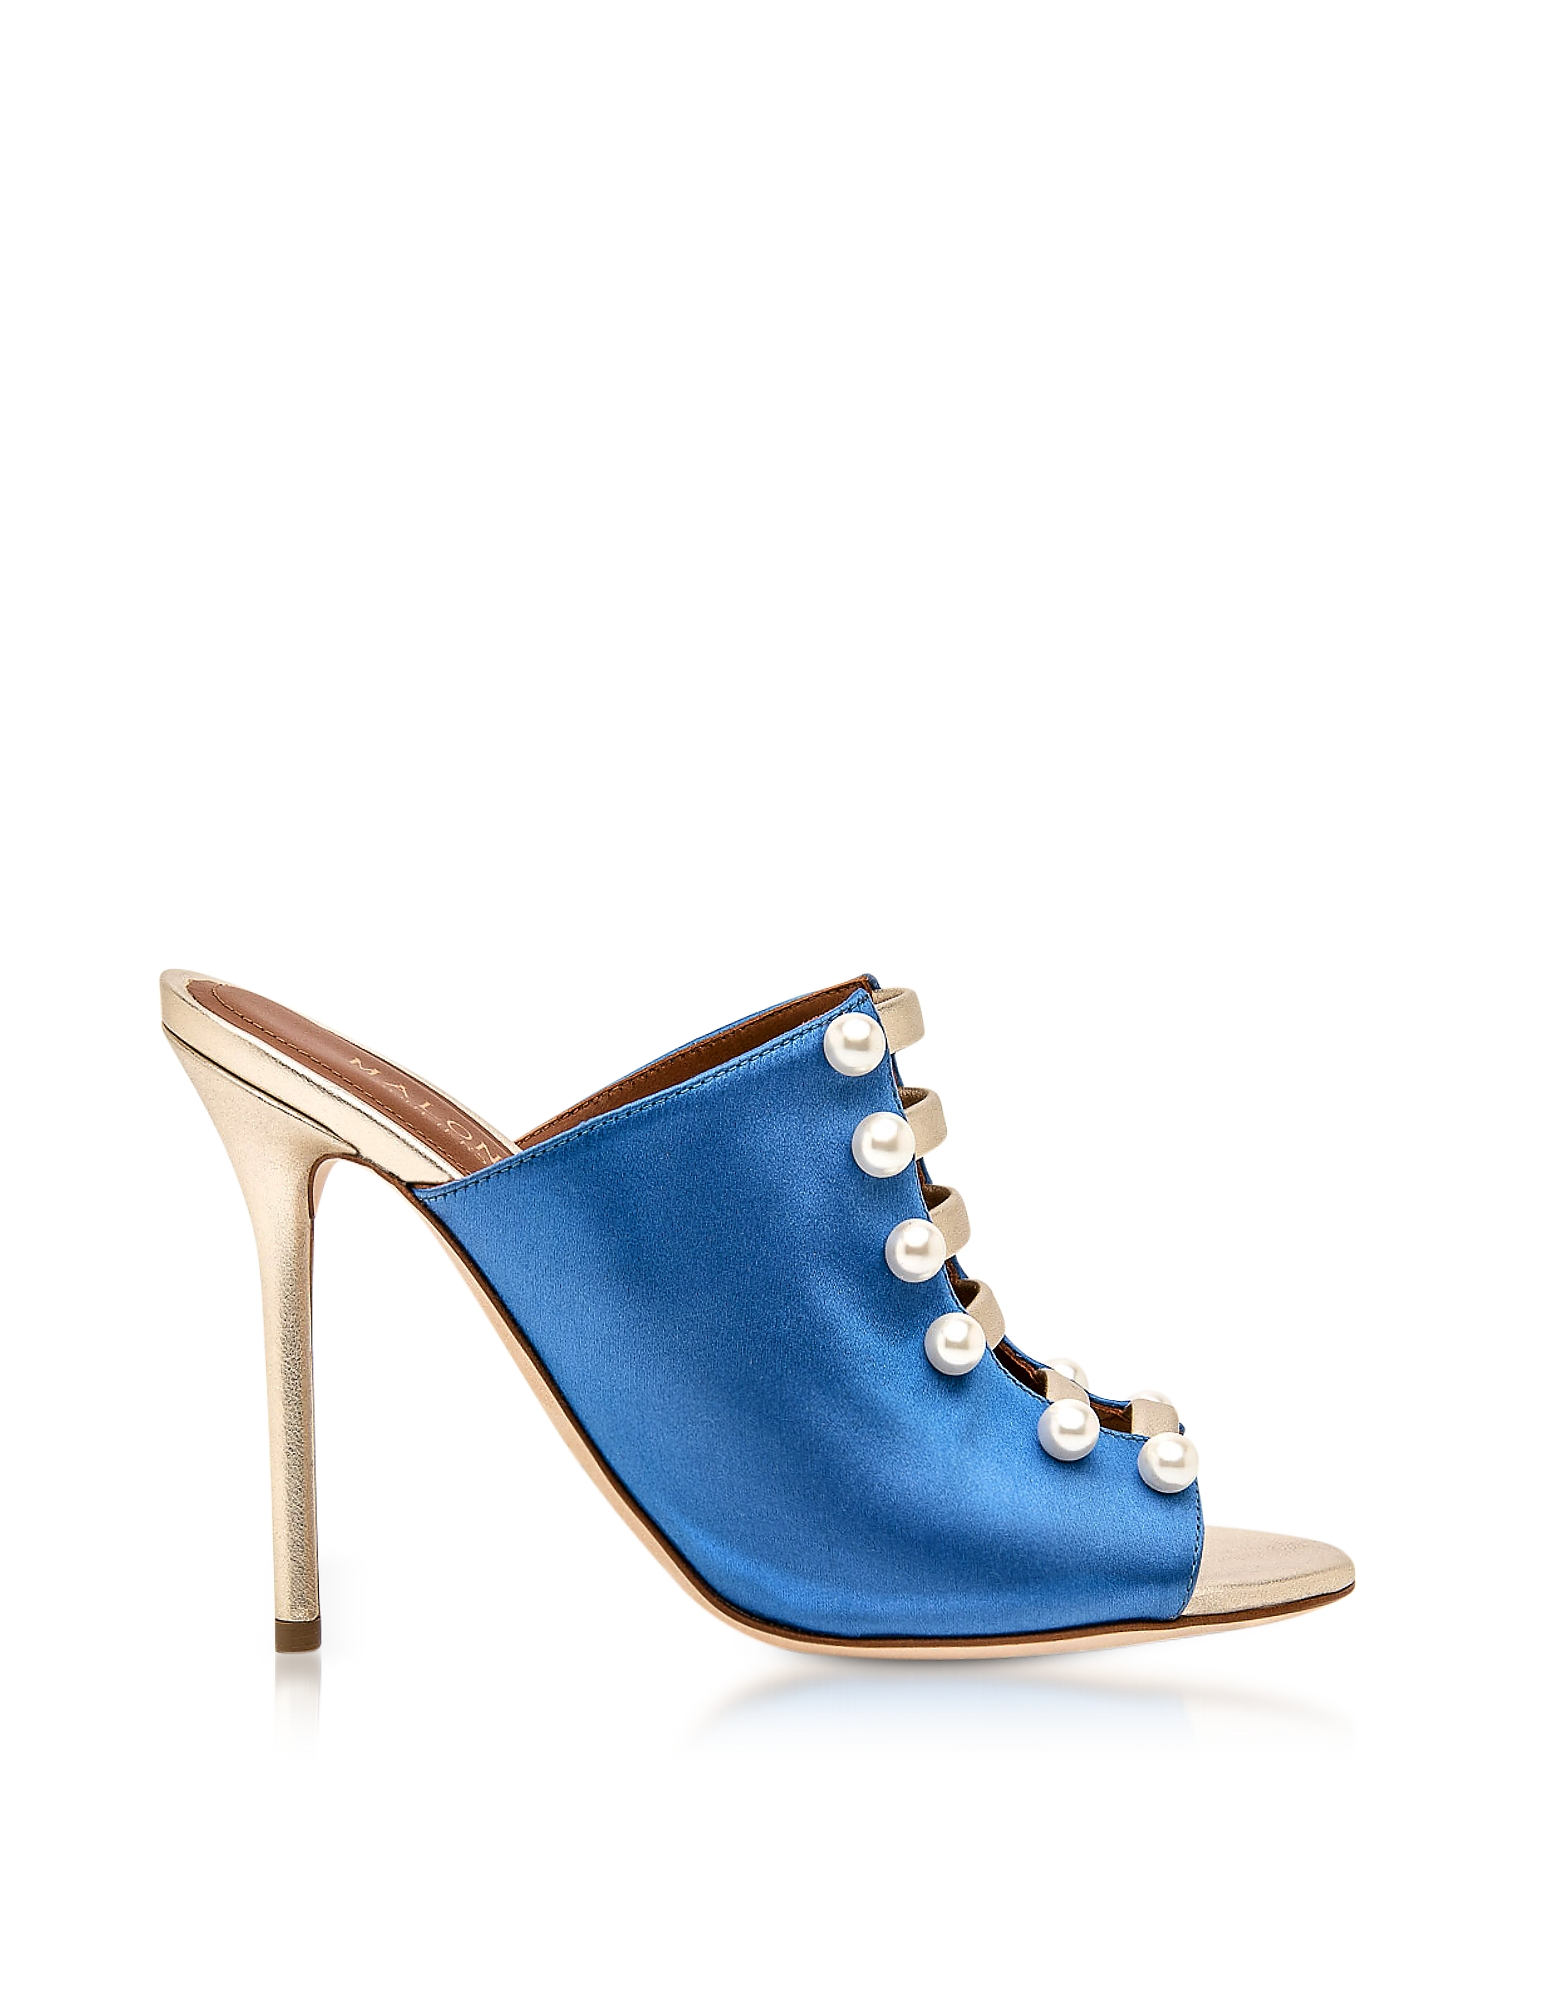 Malone Souliers Designer Shoes, Zada Blue and Platinum Satin High Heel Mules